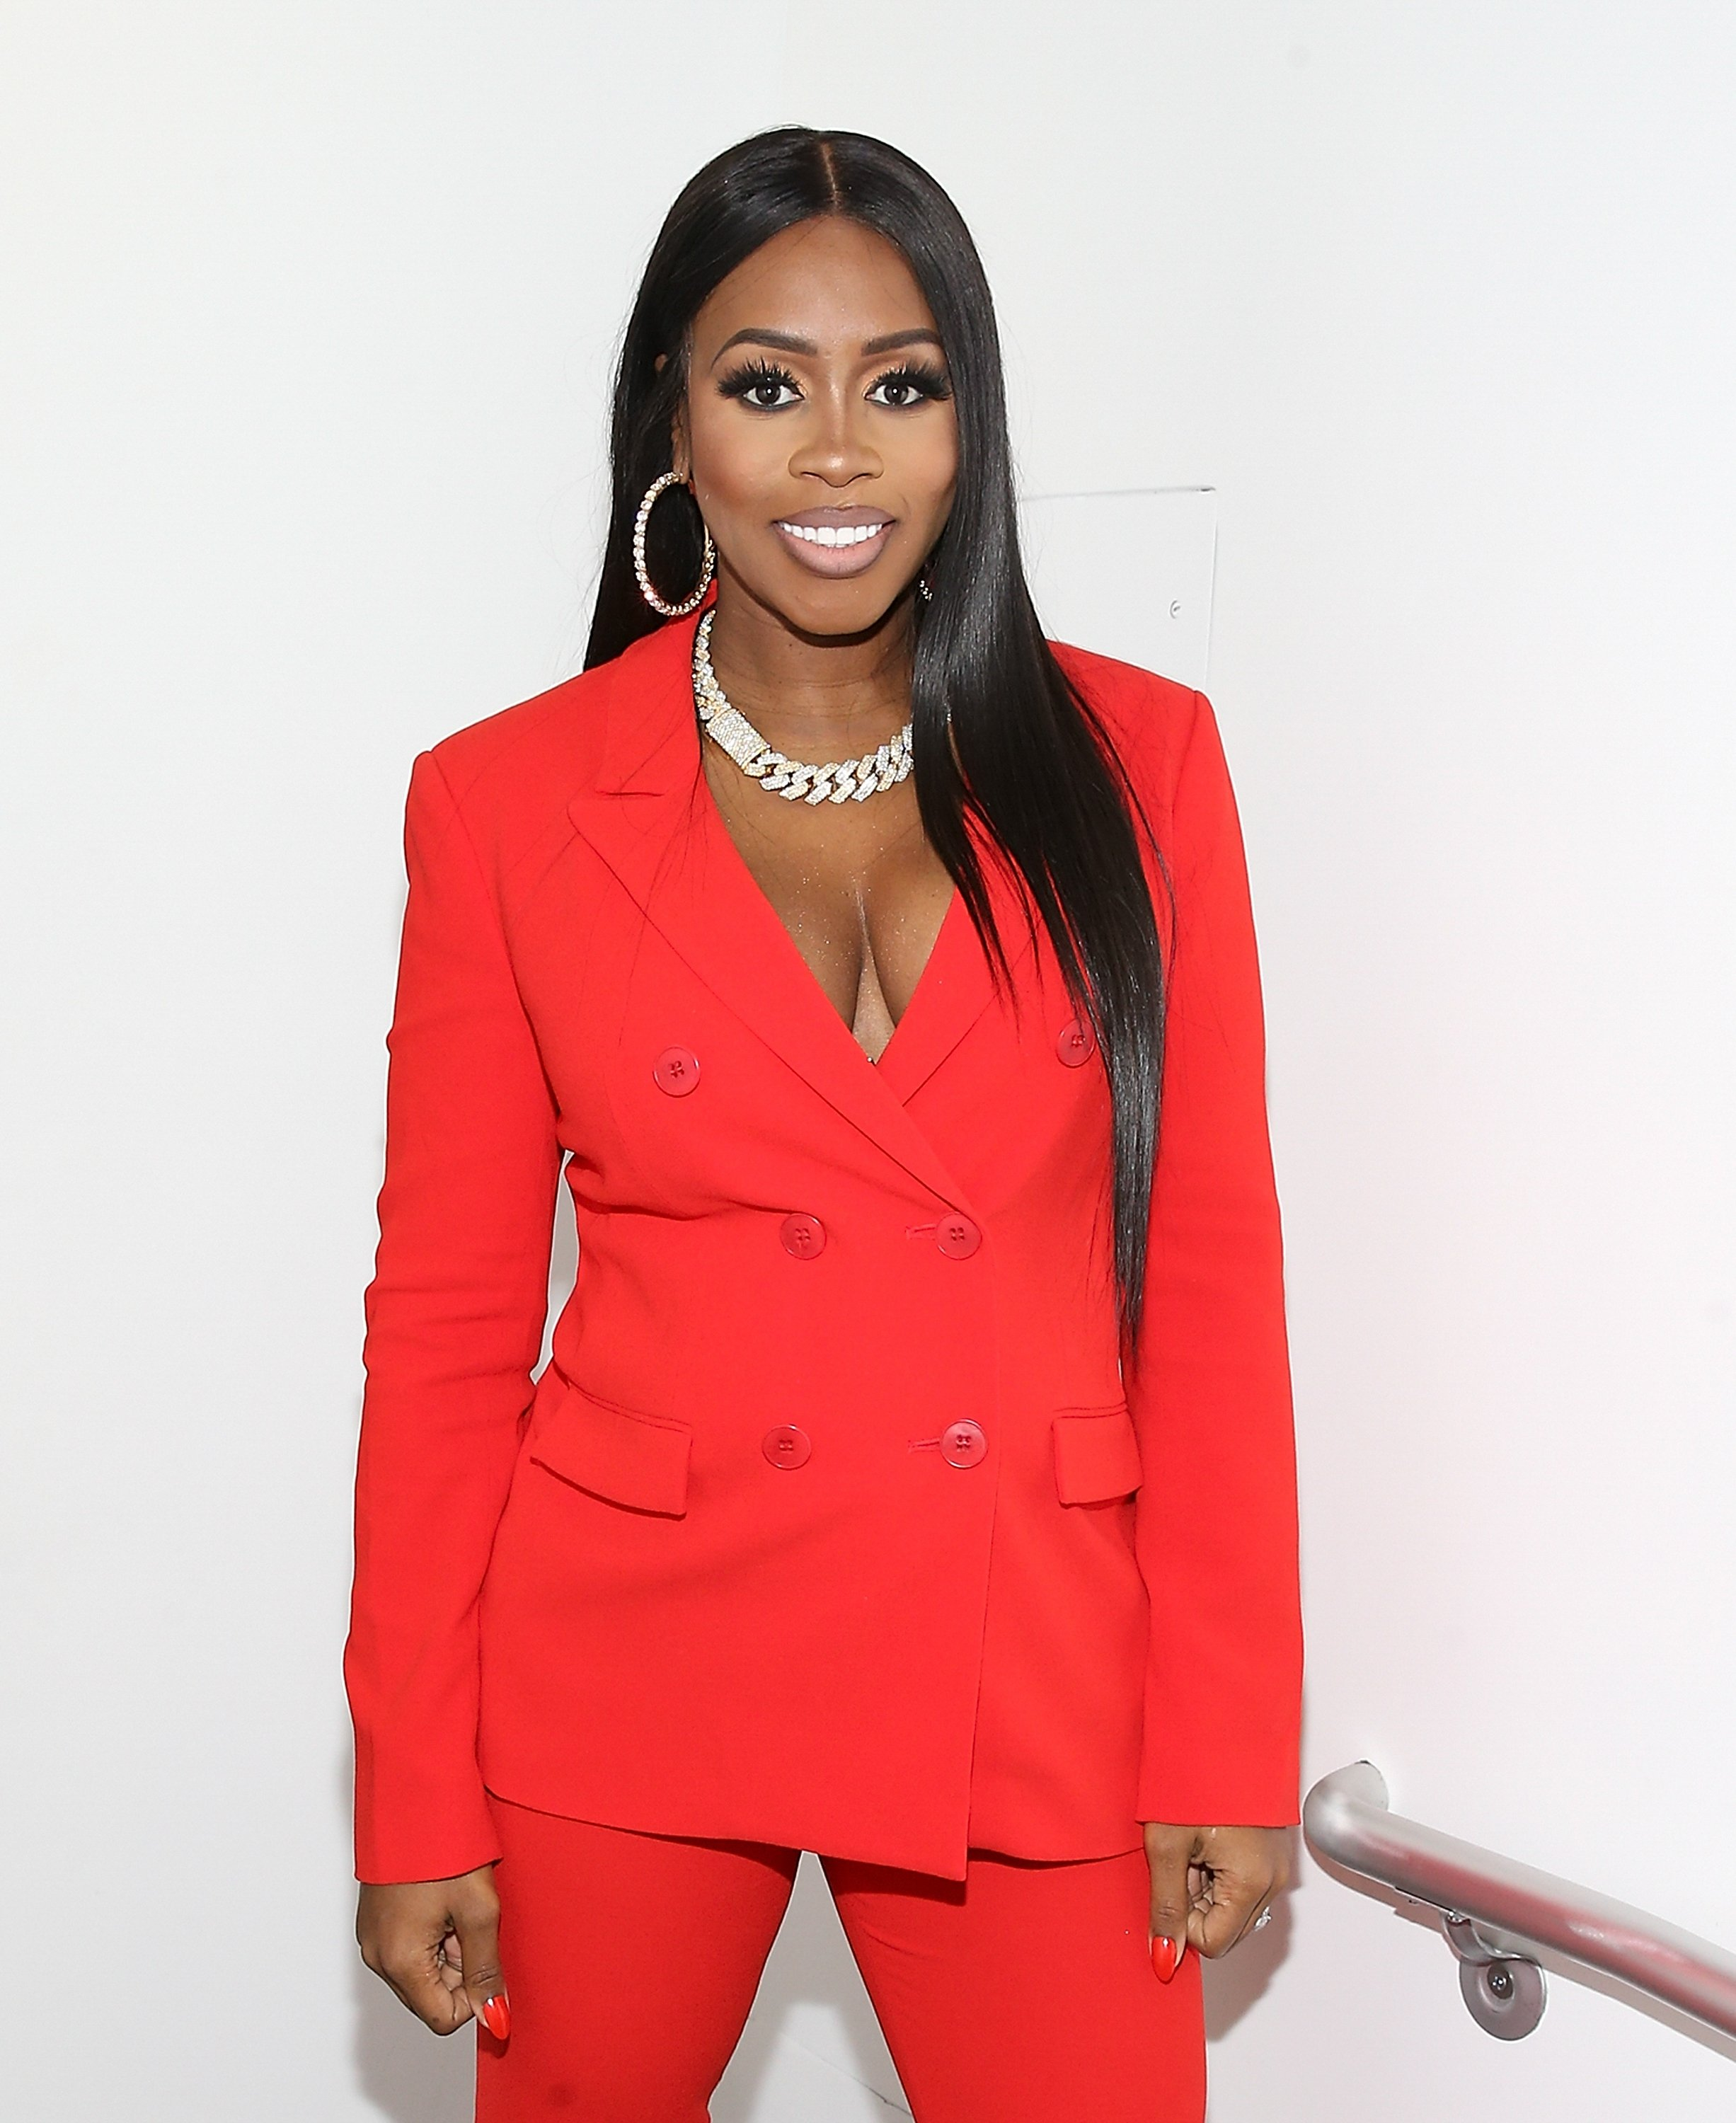 """Remy Ma at the """"Our Vote, Our Power"""" Mid Term Election Special on Oct. 22, 2018 